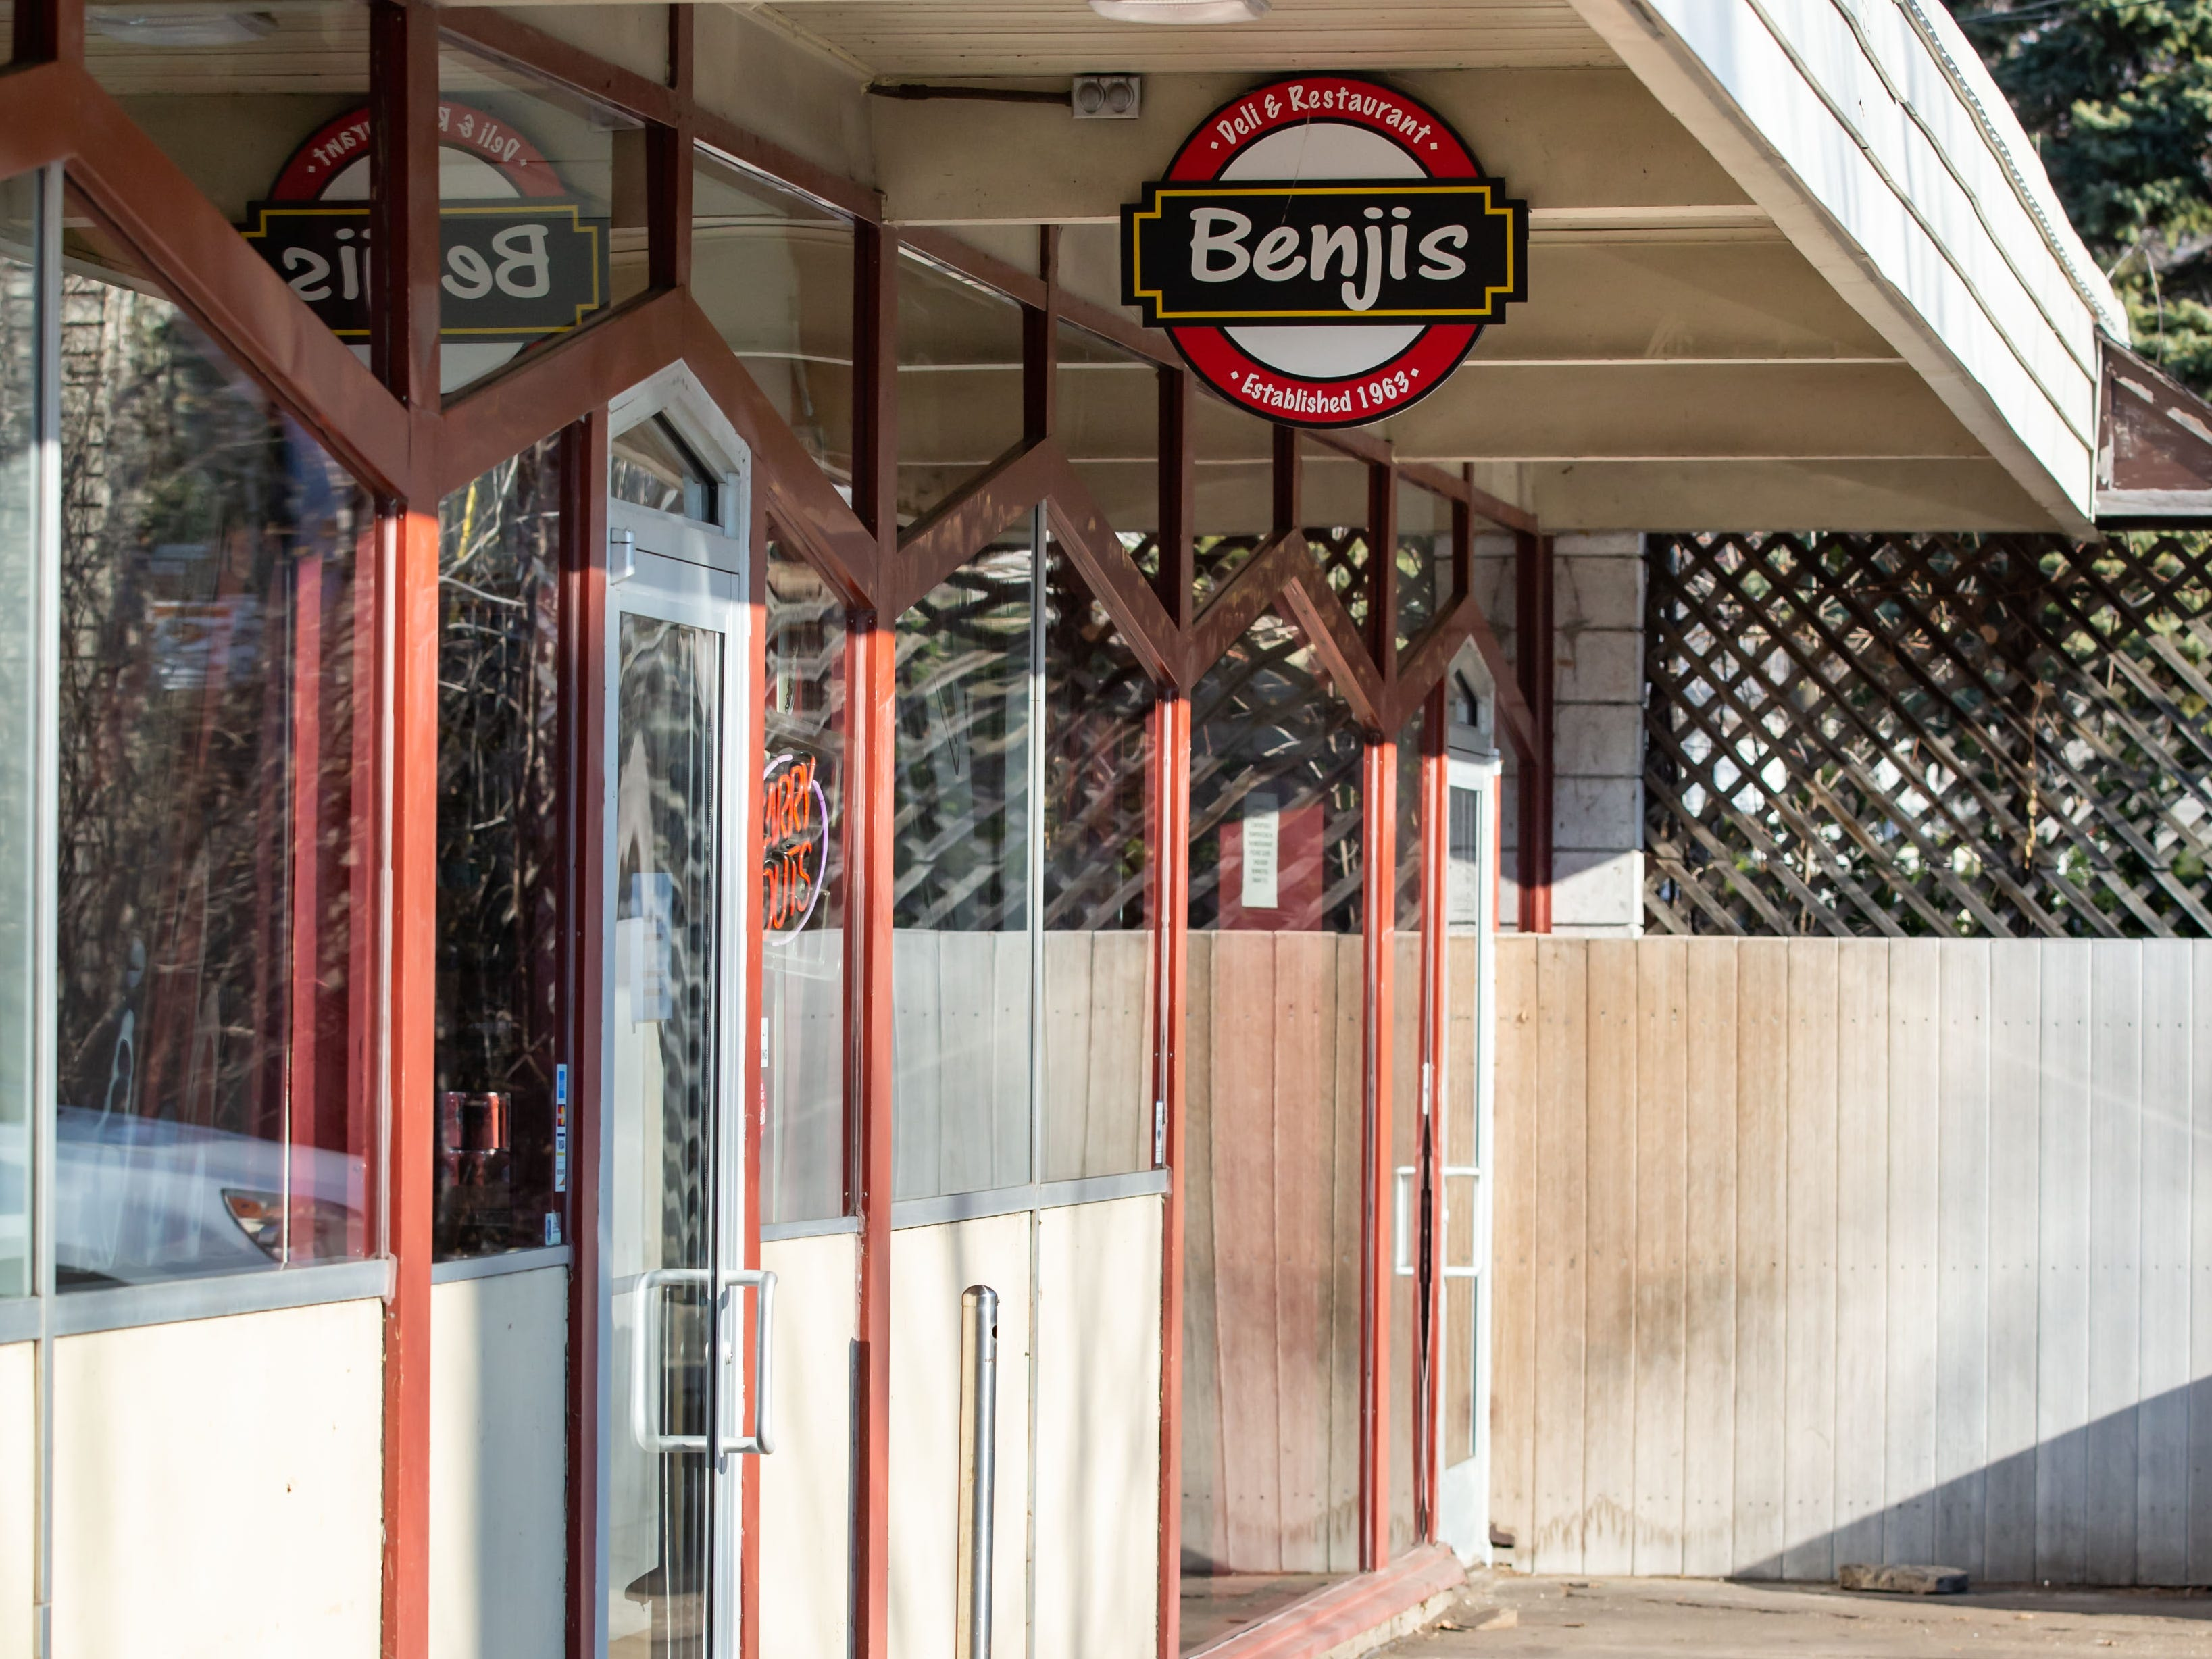 BenjiÕs Deli is located at 4156 N Oakland Ave. in Shorewood and features ample seating along with take out.